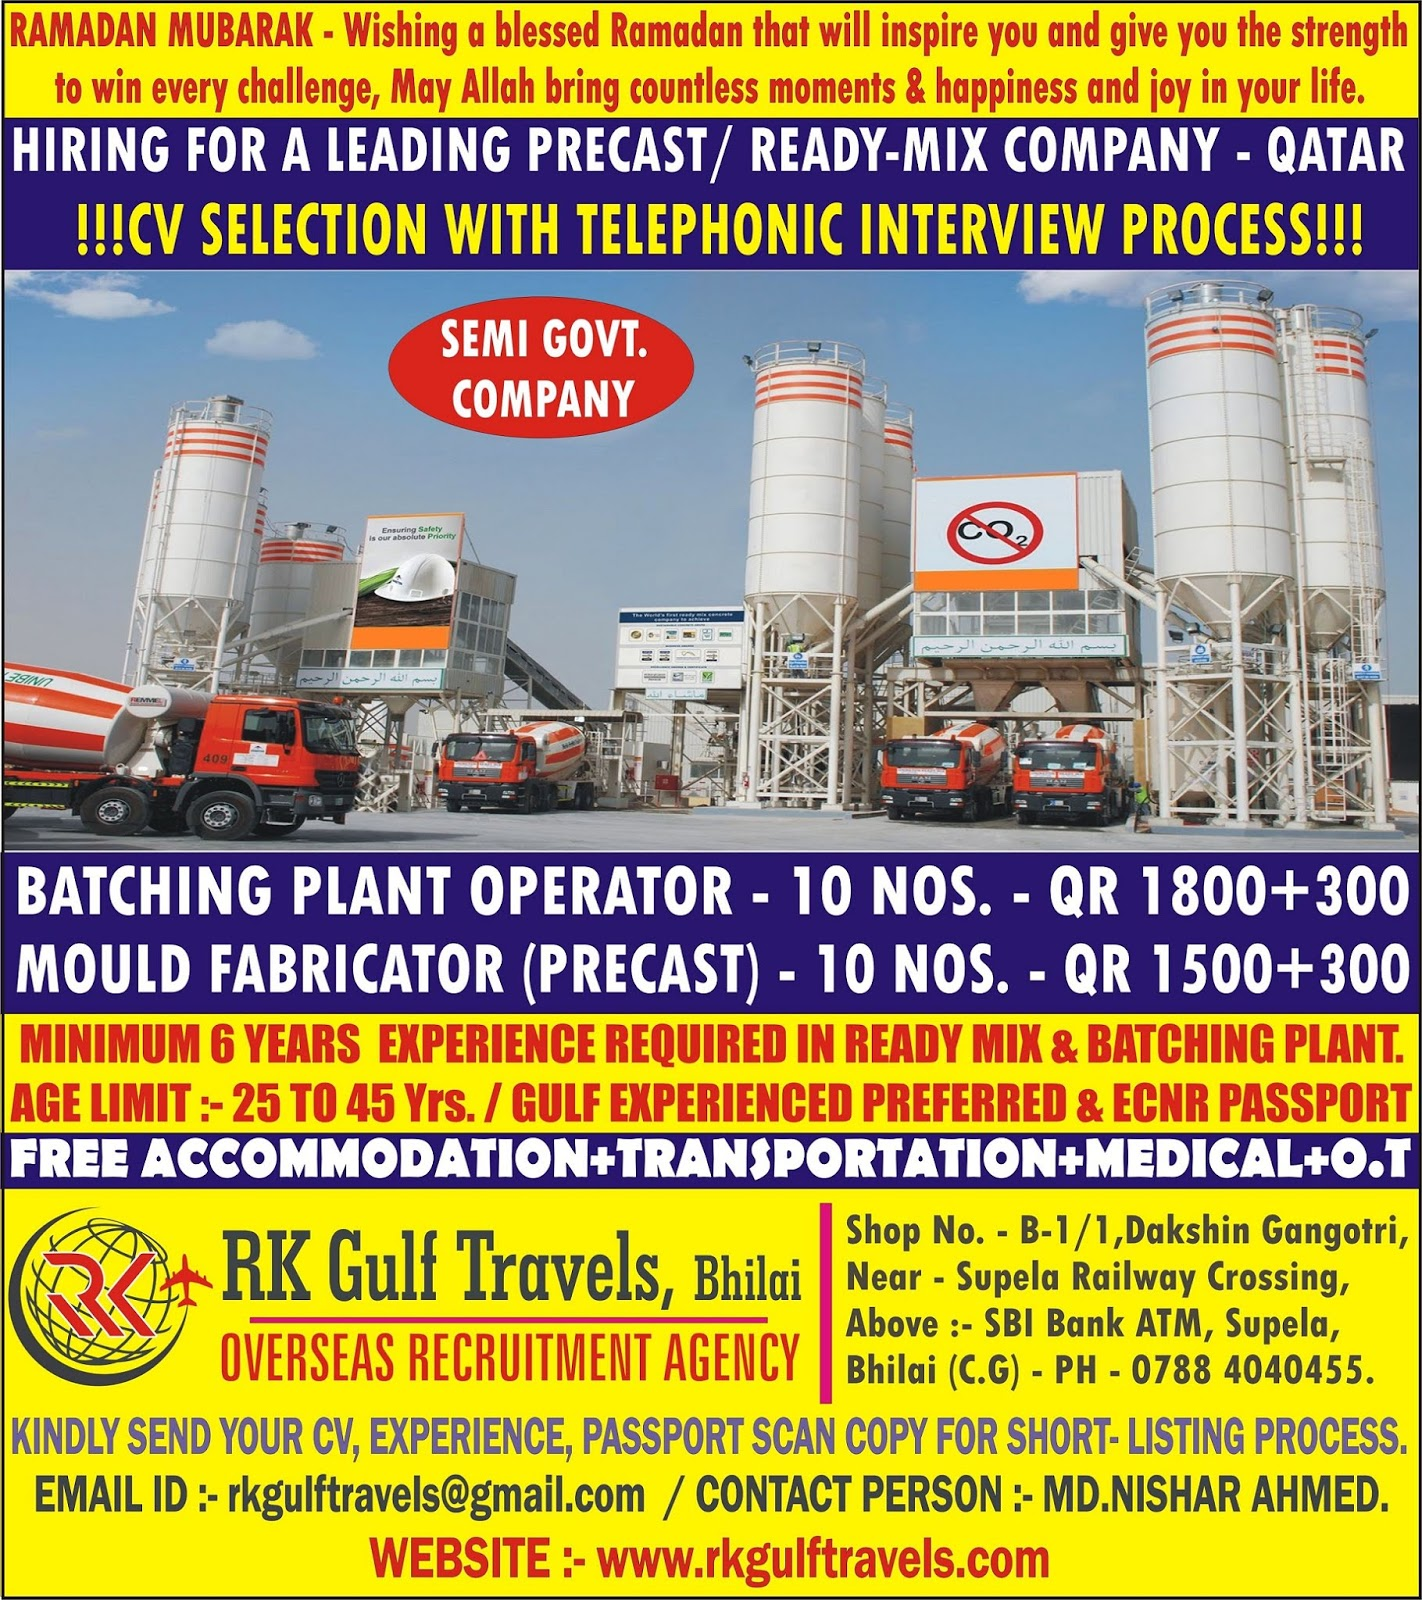 URGENTLY REQUIRED FOR QATAR - ⚫ BATCHING PLANT OPERATOR